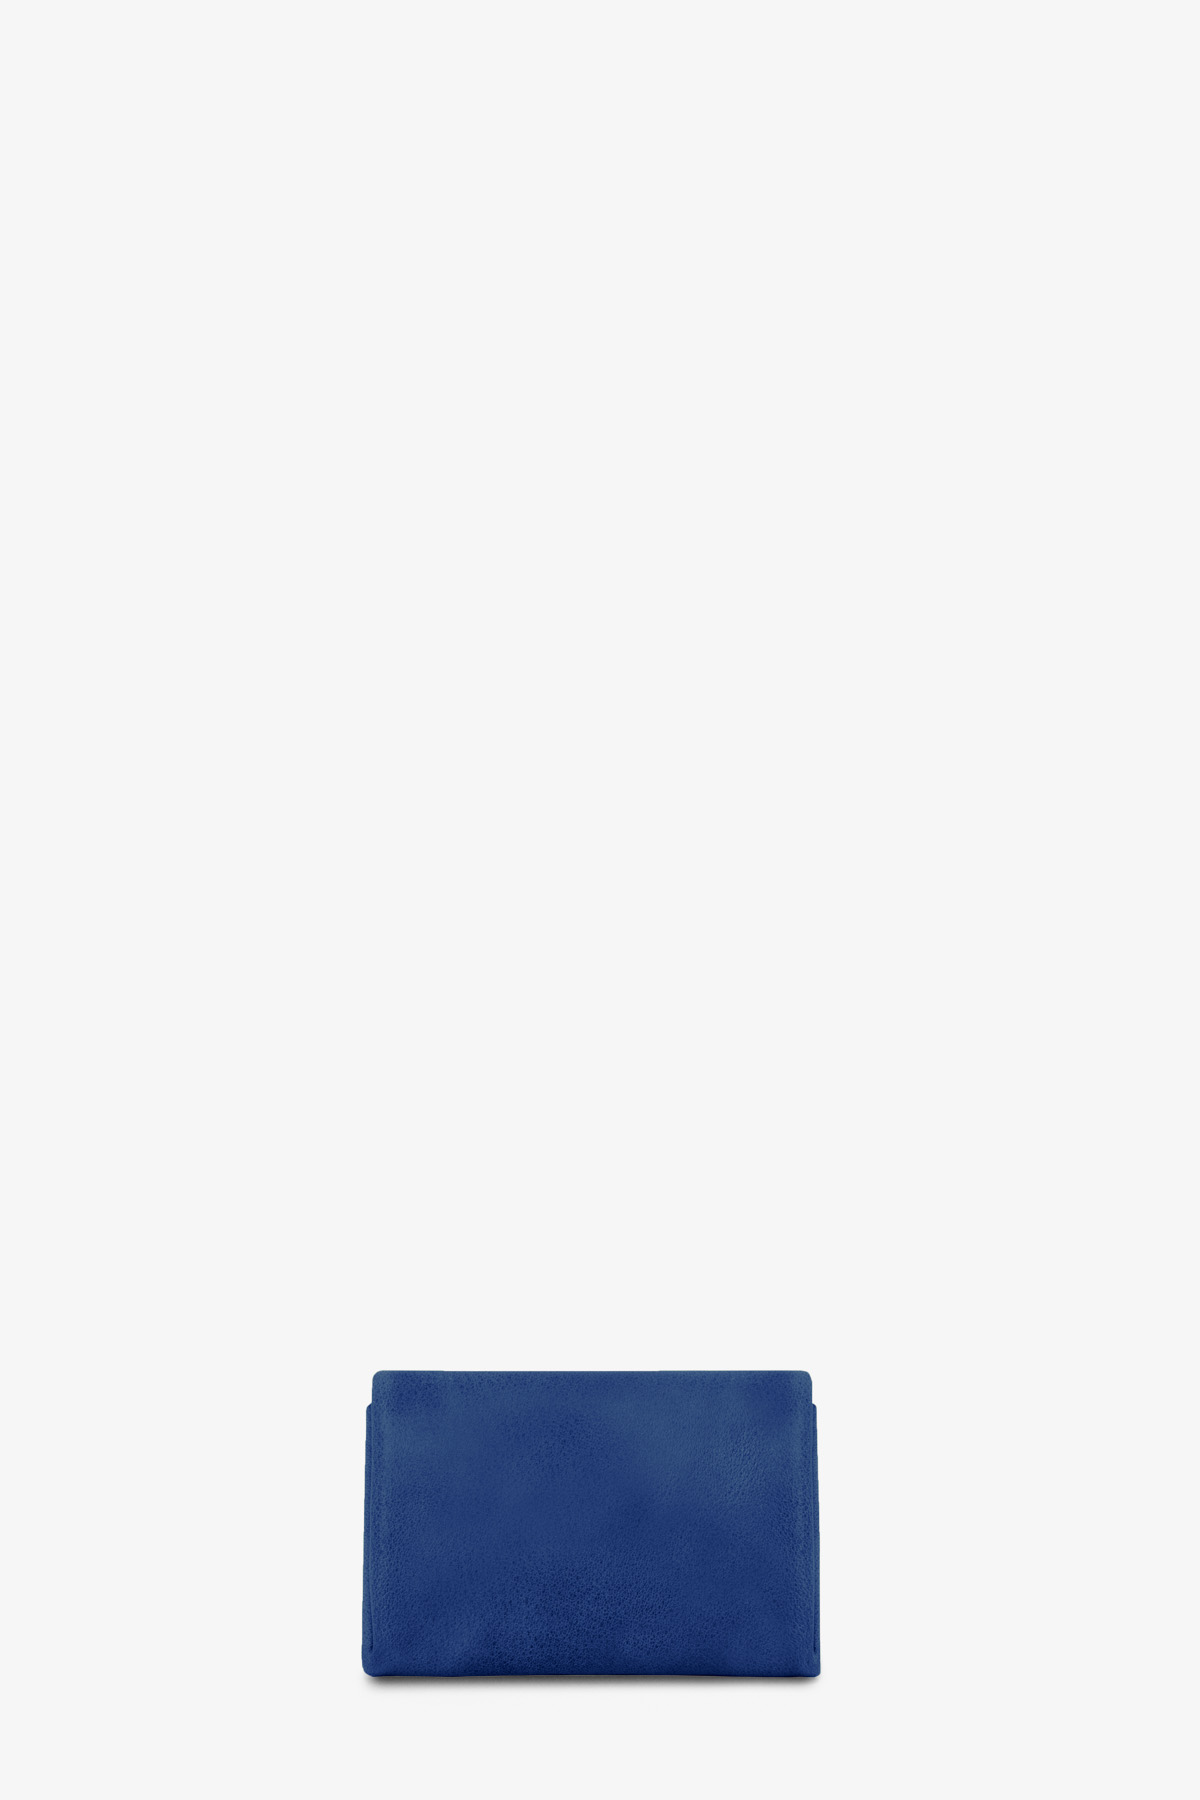 dclr001-youthwallet-a20-royalblue-back